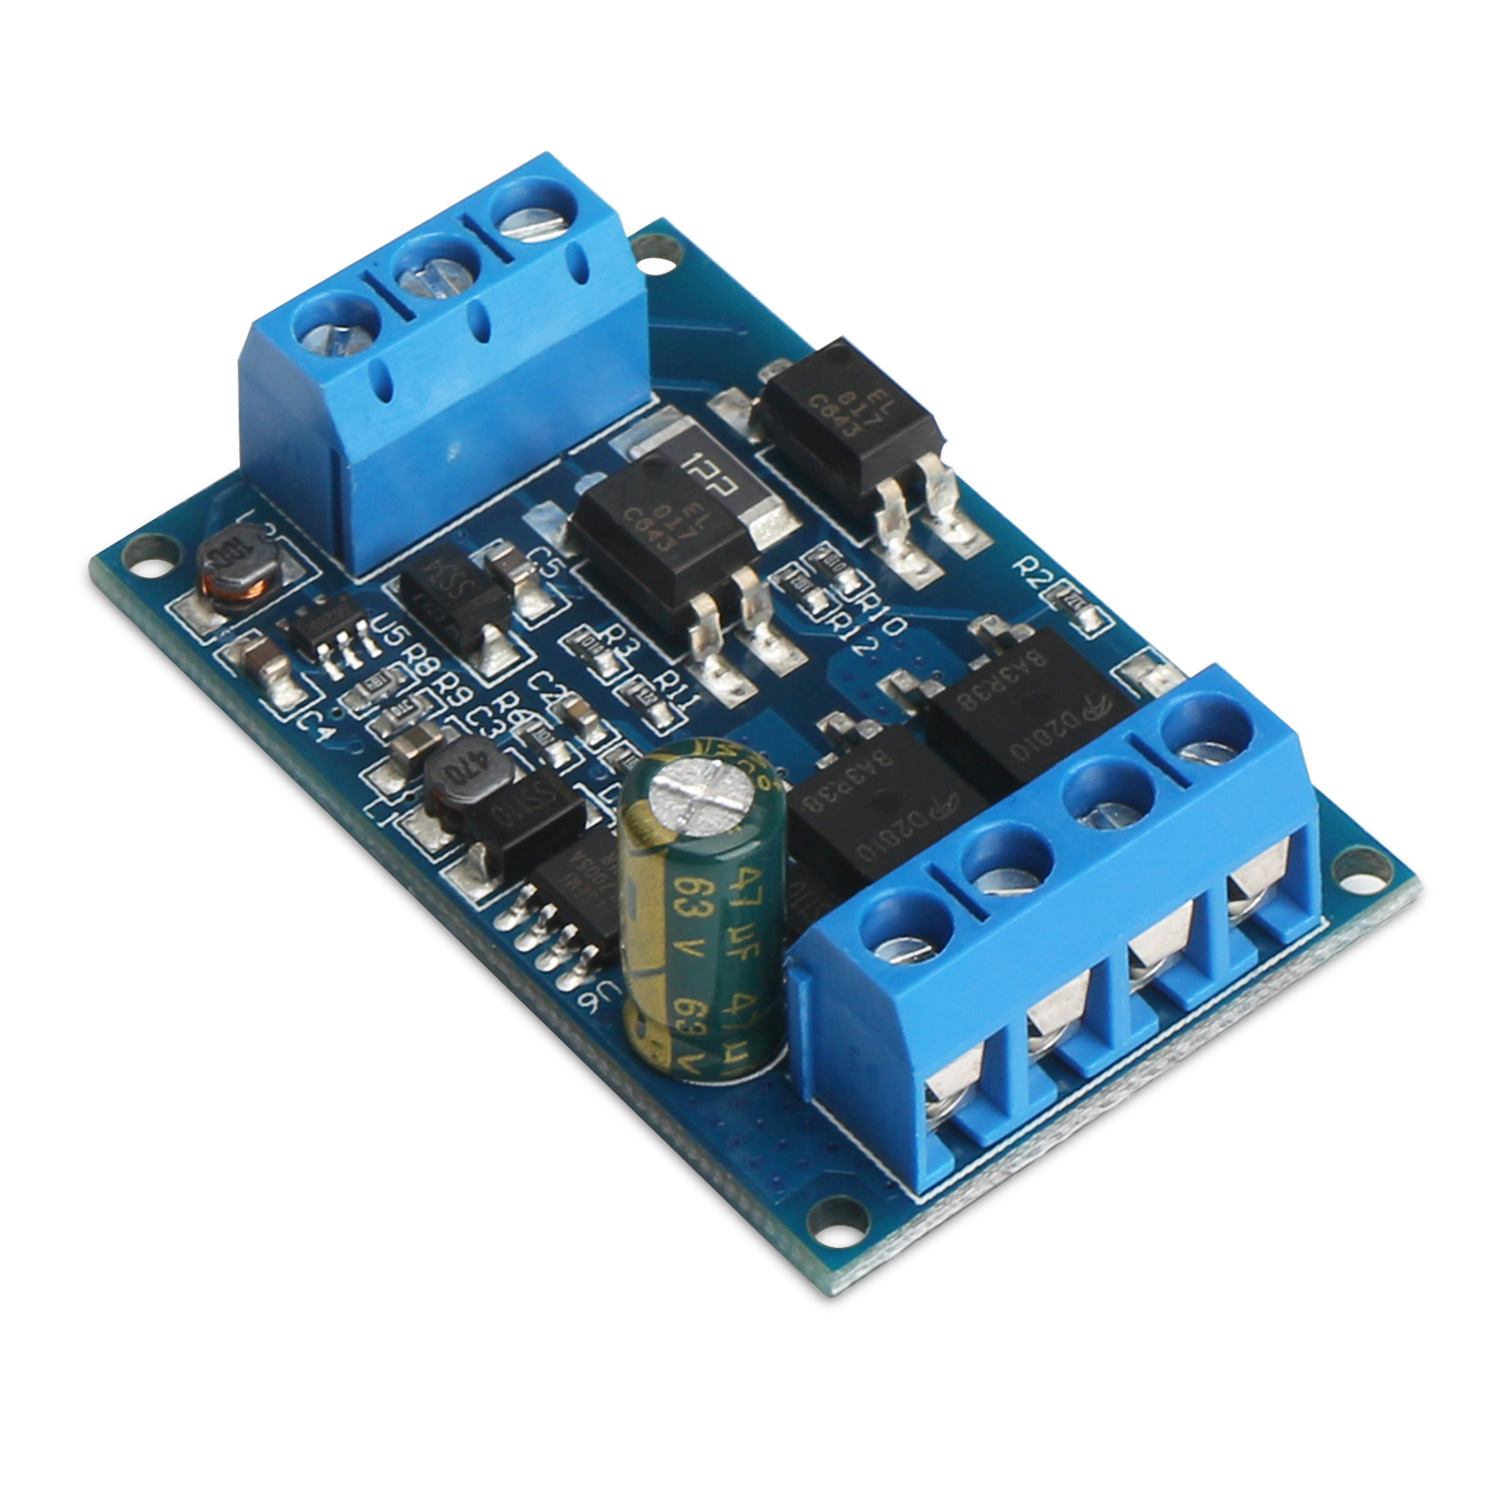 600w Pwm Controller Dc 4v 60v Electronically Controlled